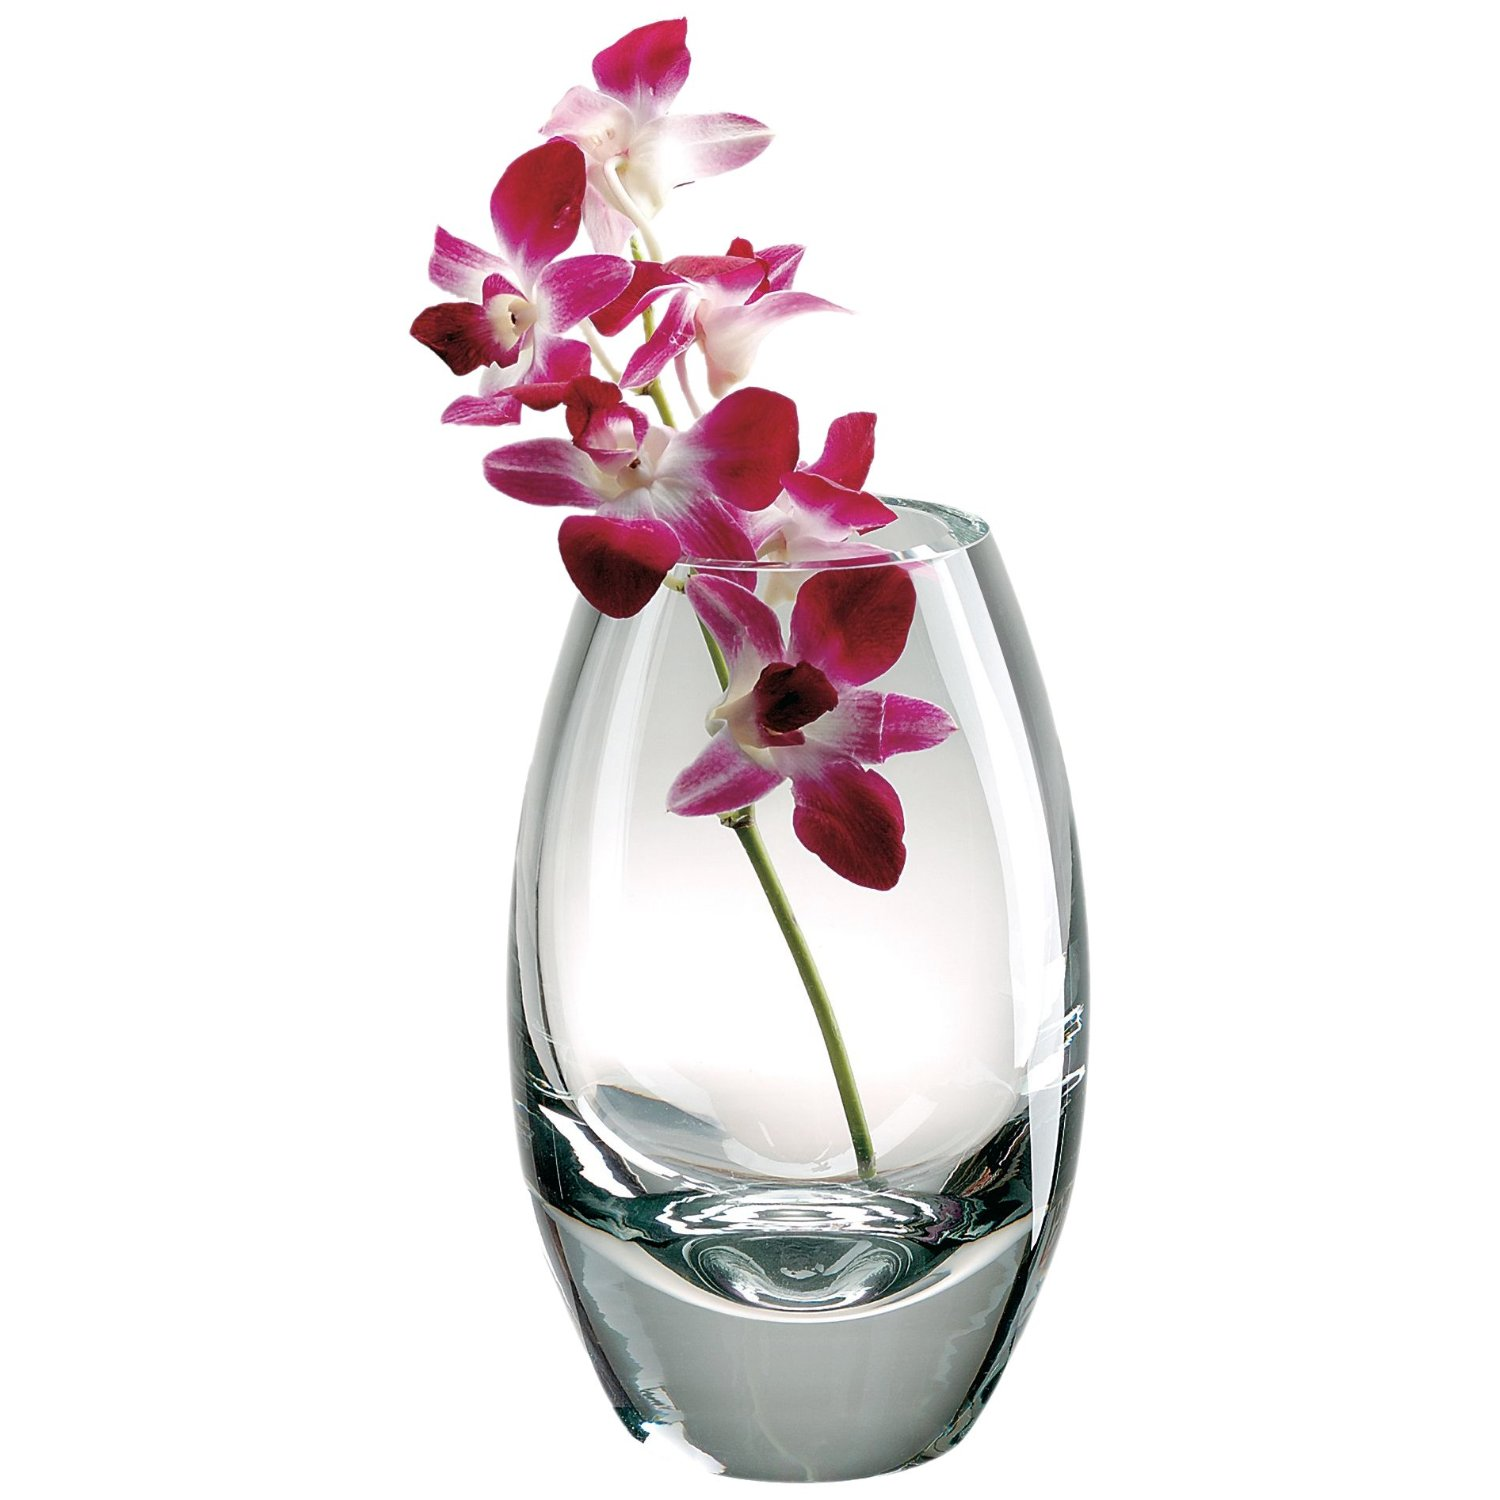 Badash Crystal Mouth Blown Radiant Vase, 10 Inch